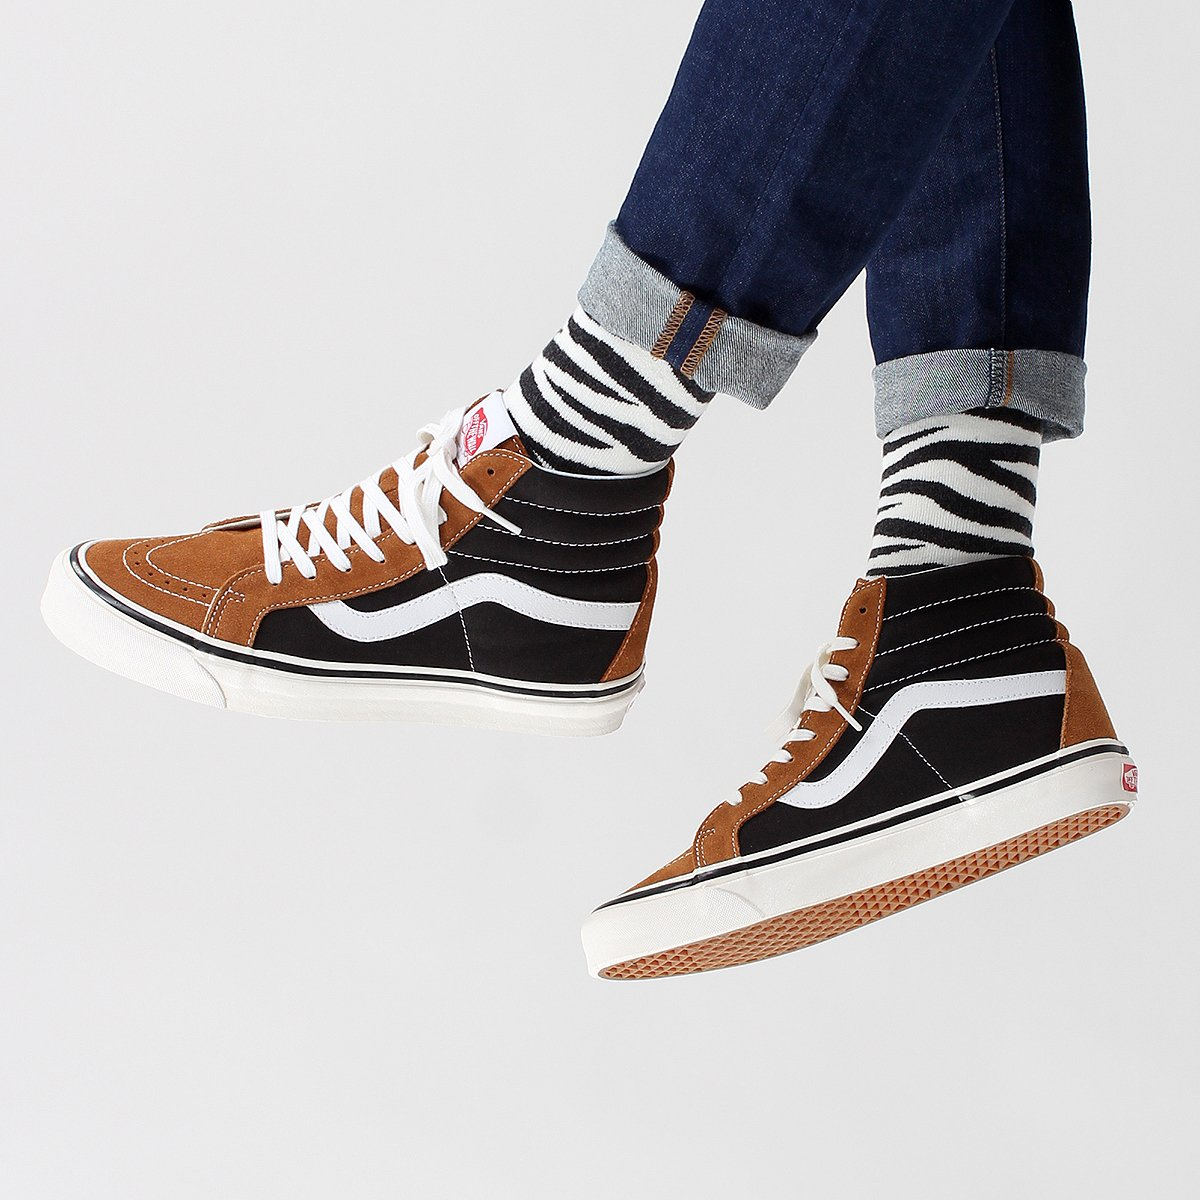 991041b8032 Vans SK8-Hi 38 DX Shoes – (Anaheim Factory) OG Hart Brown   OG Black...  https   goo.gl oubYJY Jeans    edwineurope ED-85 Slim Tapered Power Blue  11.5oz ...